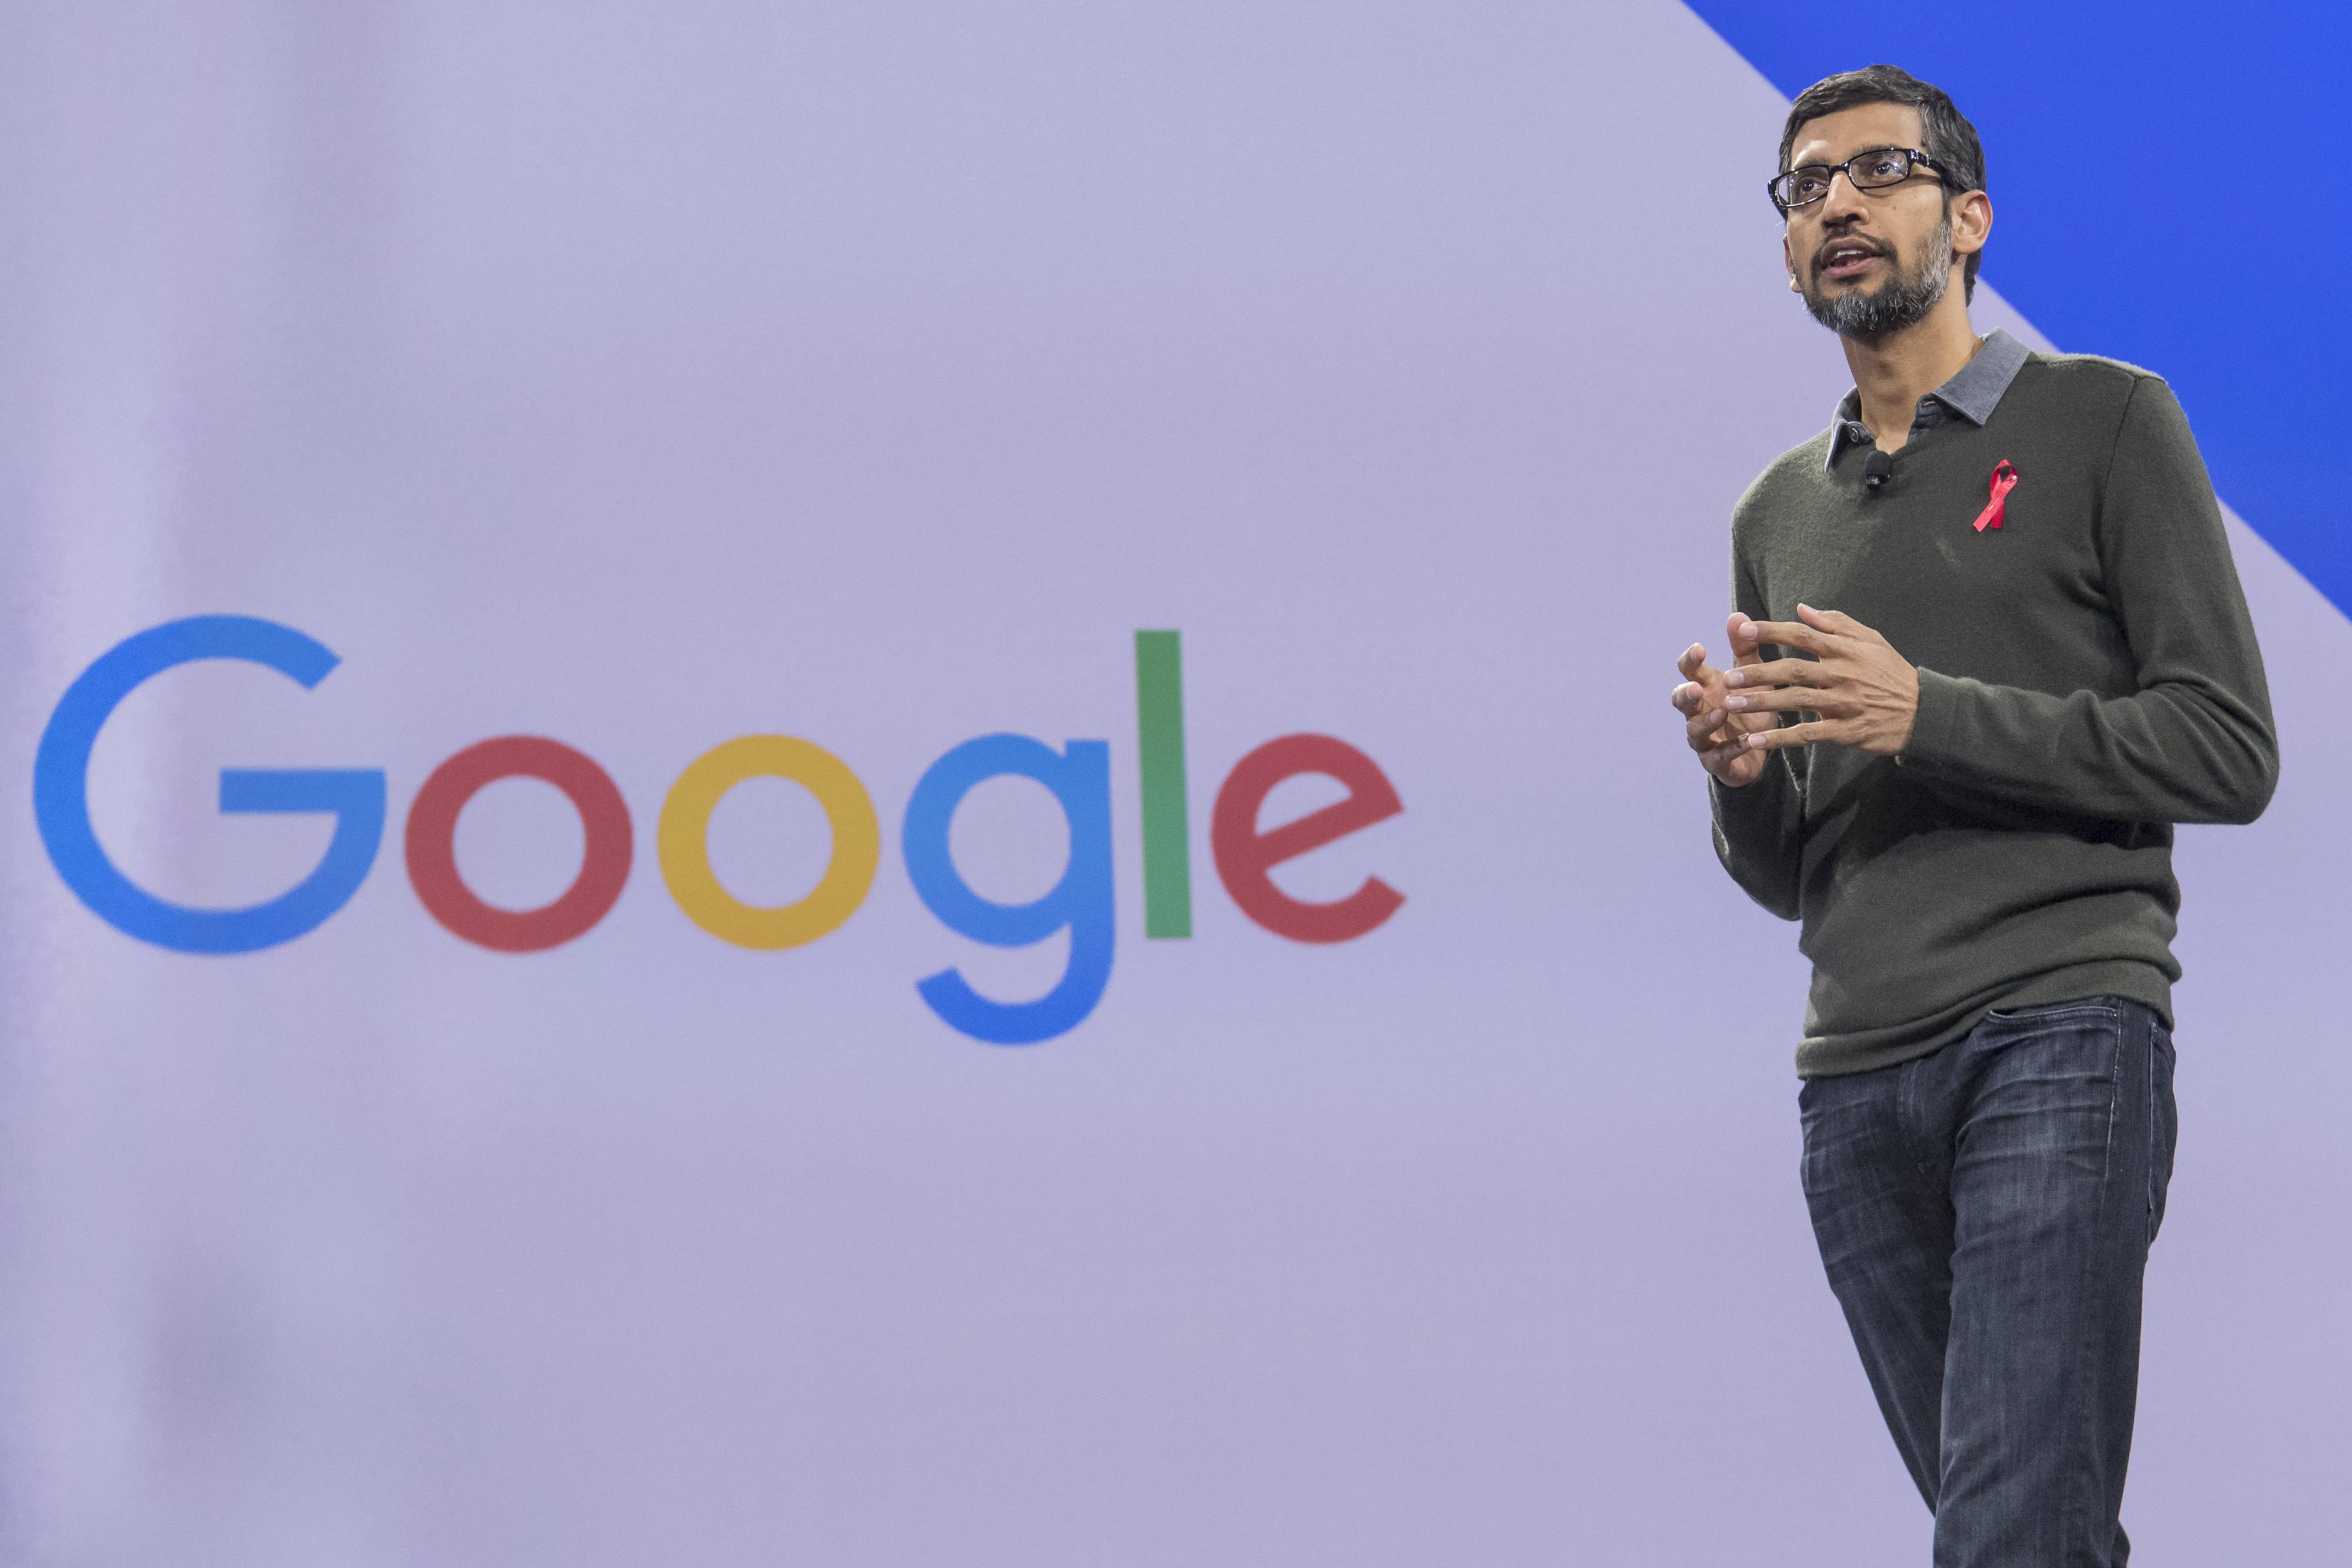 Google's move to cut developers off from scanning people's Gmail for ad targeting might go unnoticed by most users — but it could upend a whole segment of apps, highlighting the outsized power and influence Google wields as a gatekeeper of data.